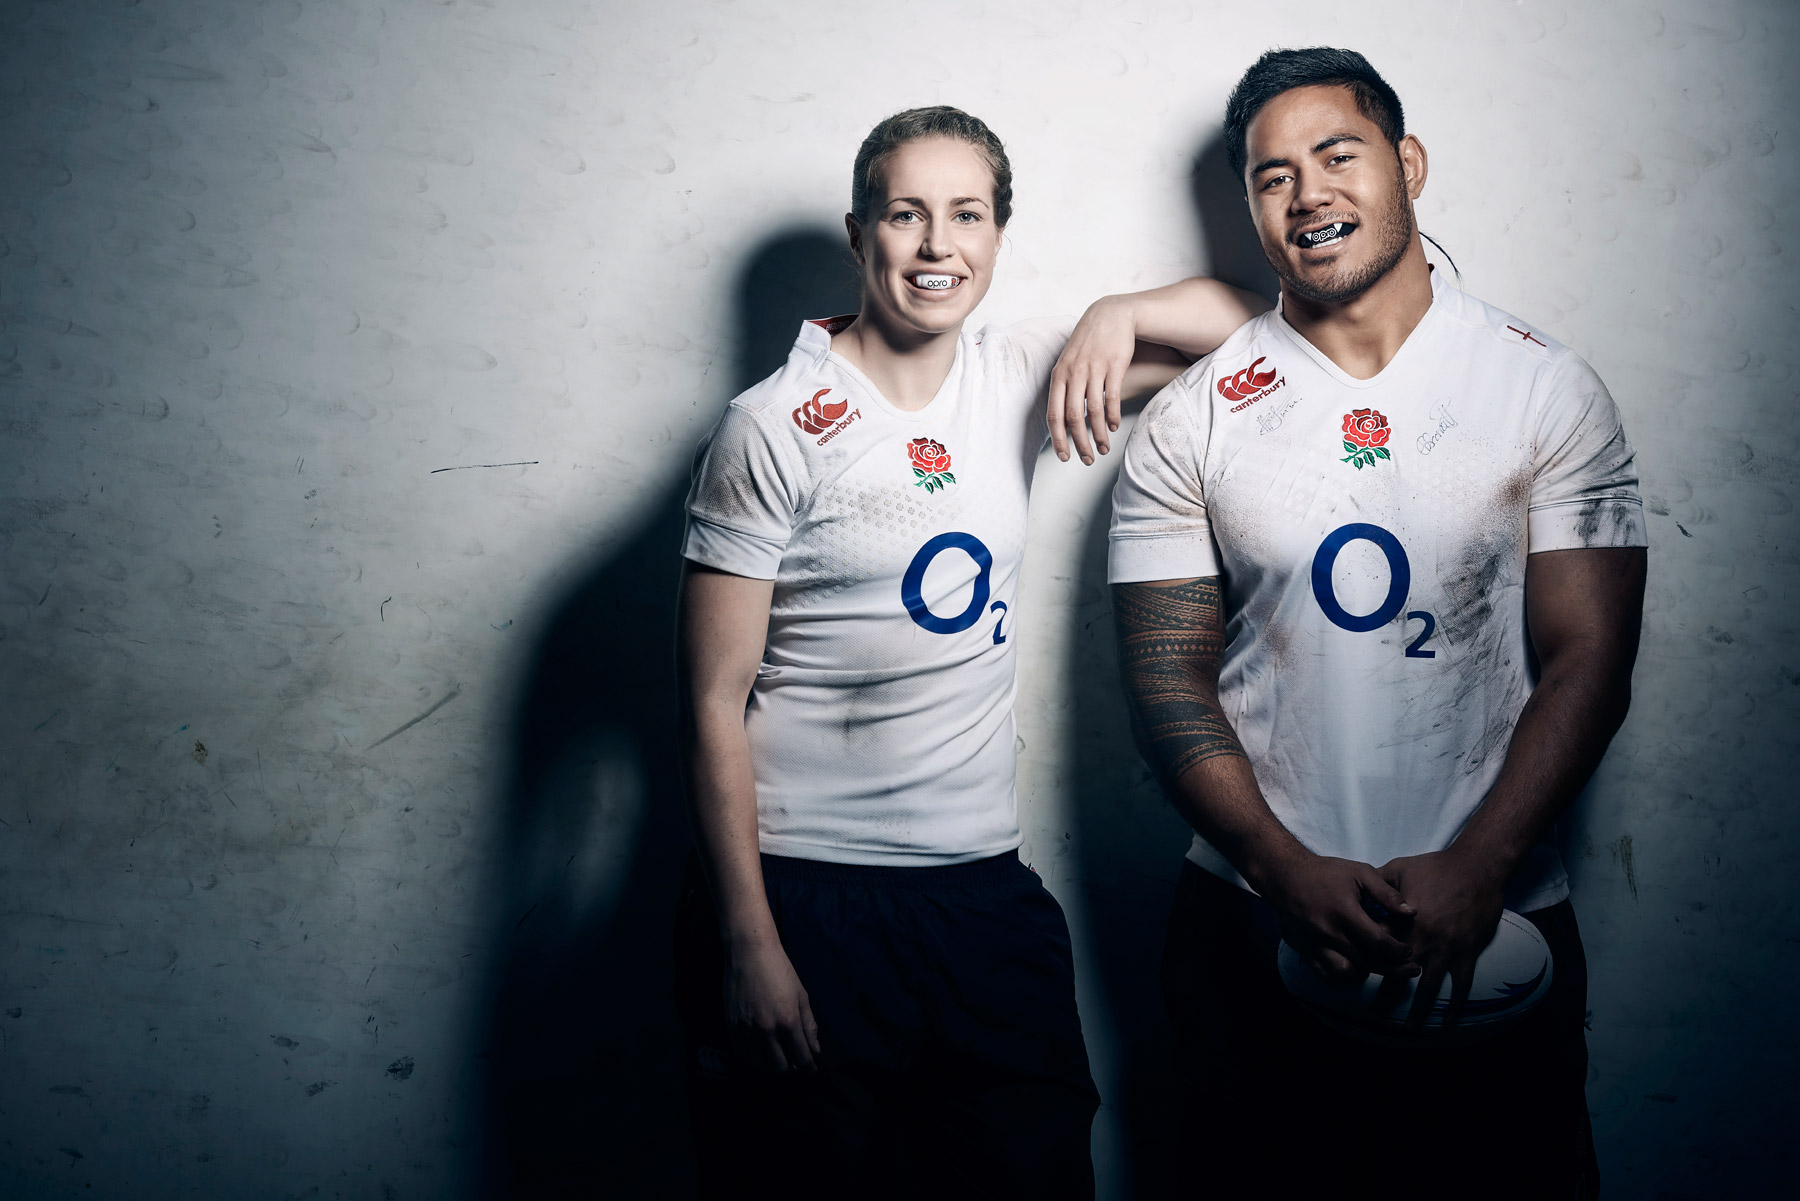 Manu Tuilagi and Emily Scarratt photographed for OPRO